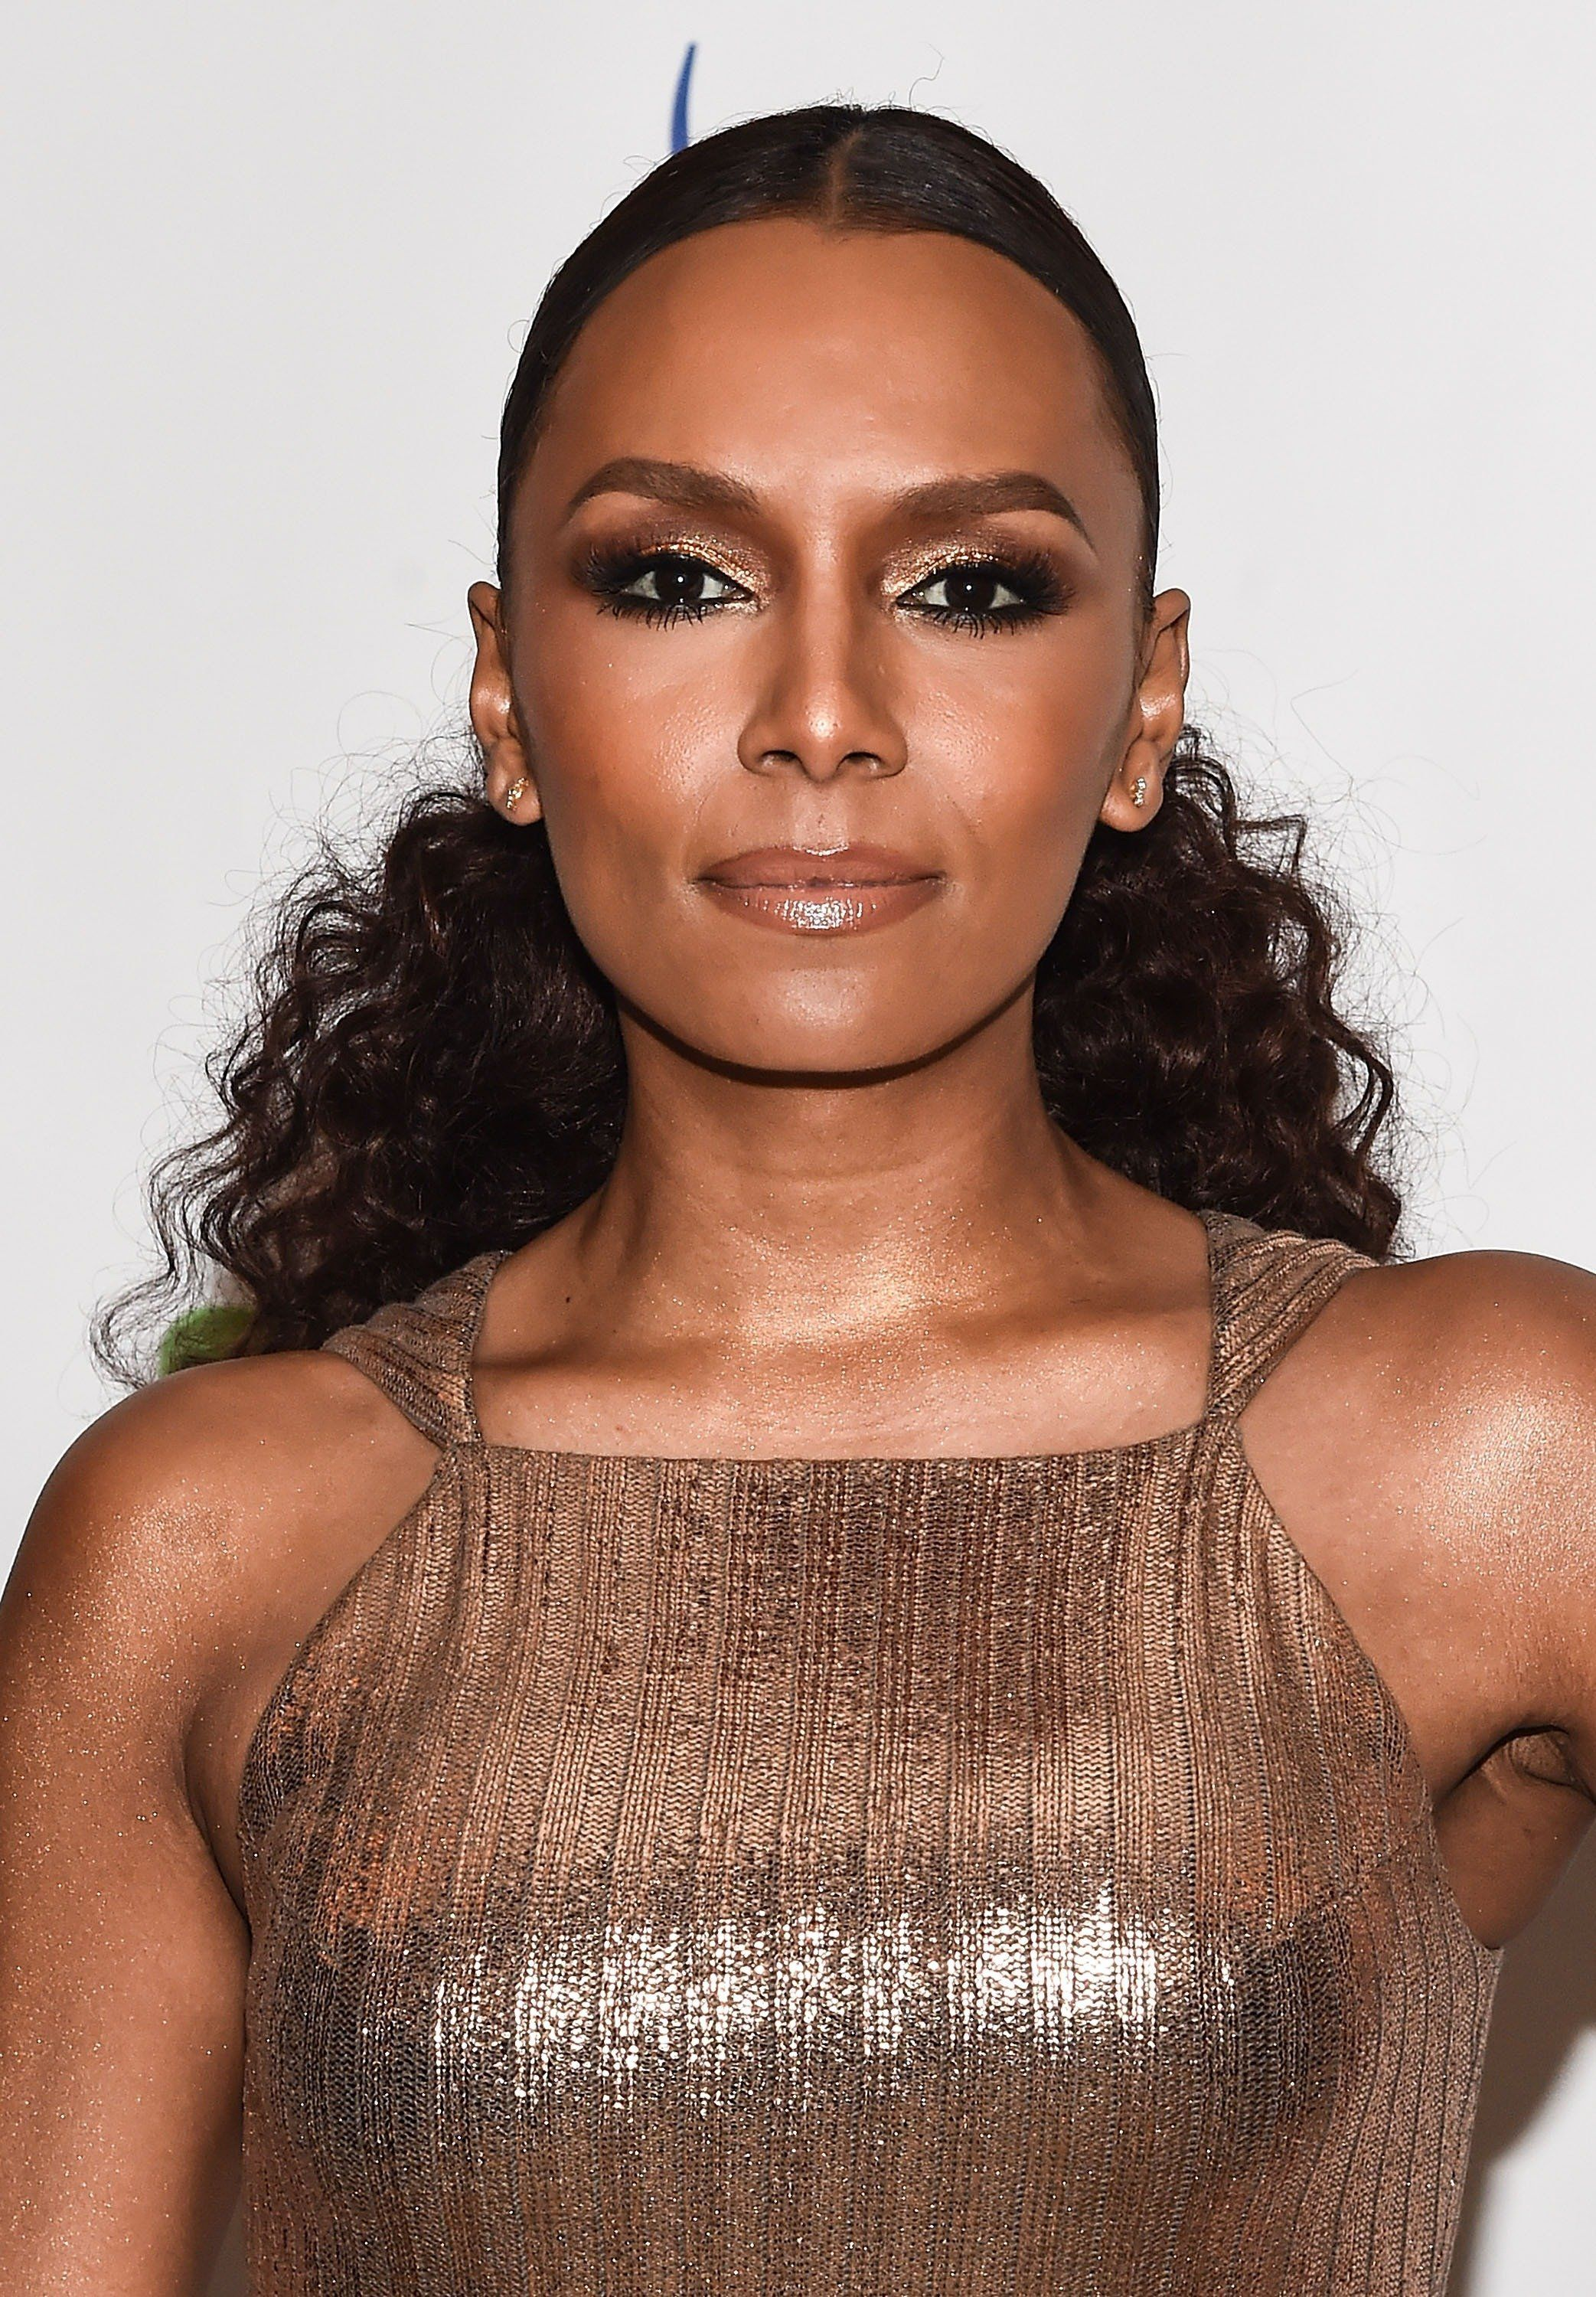 NEW YORK, NY - JUNE 15:  Janet Mock attends the 15th Annual Benefit Gala, 'An Evening Unmasking Eating Disorders' hosted by The National Eating Disorder Association at The Pierre Hotel on June 15, 2017 in New York City.  (Photo by Daniel Zuchnik/WireImage)